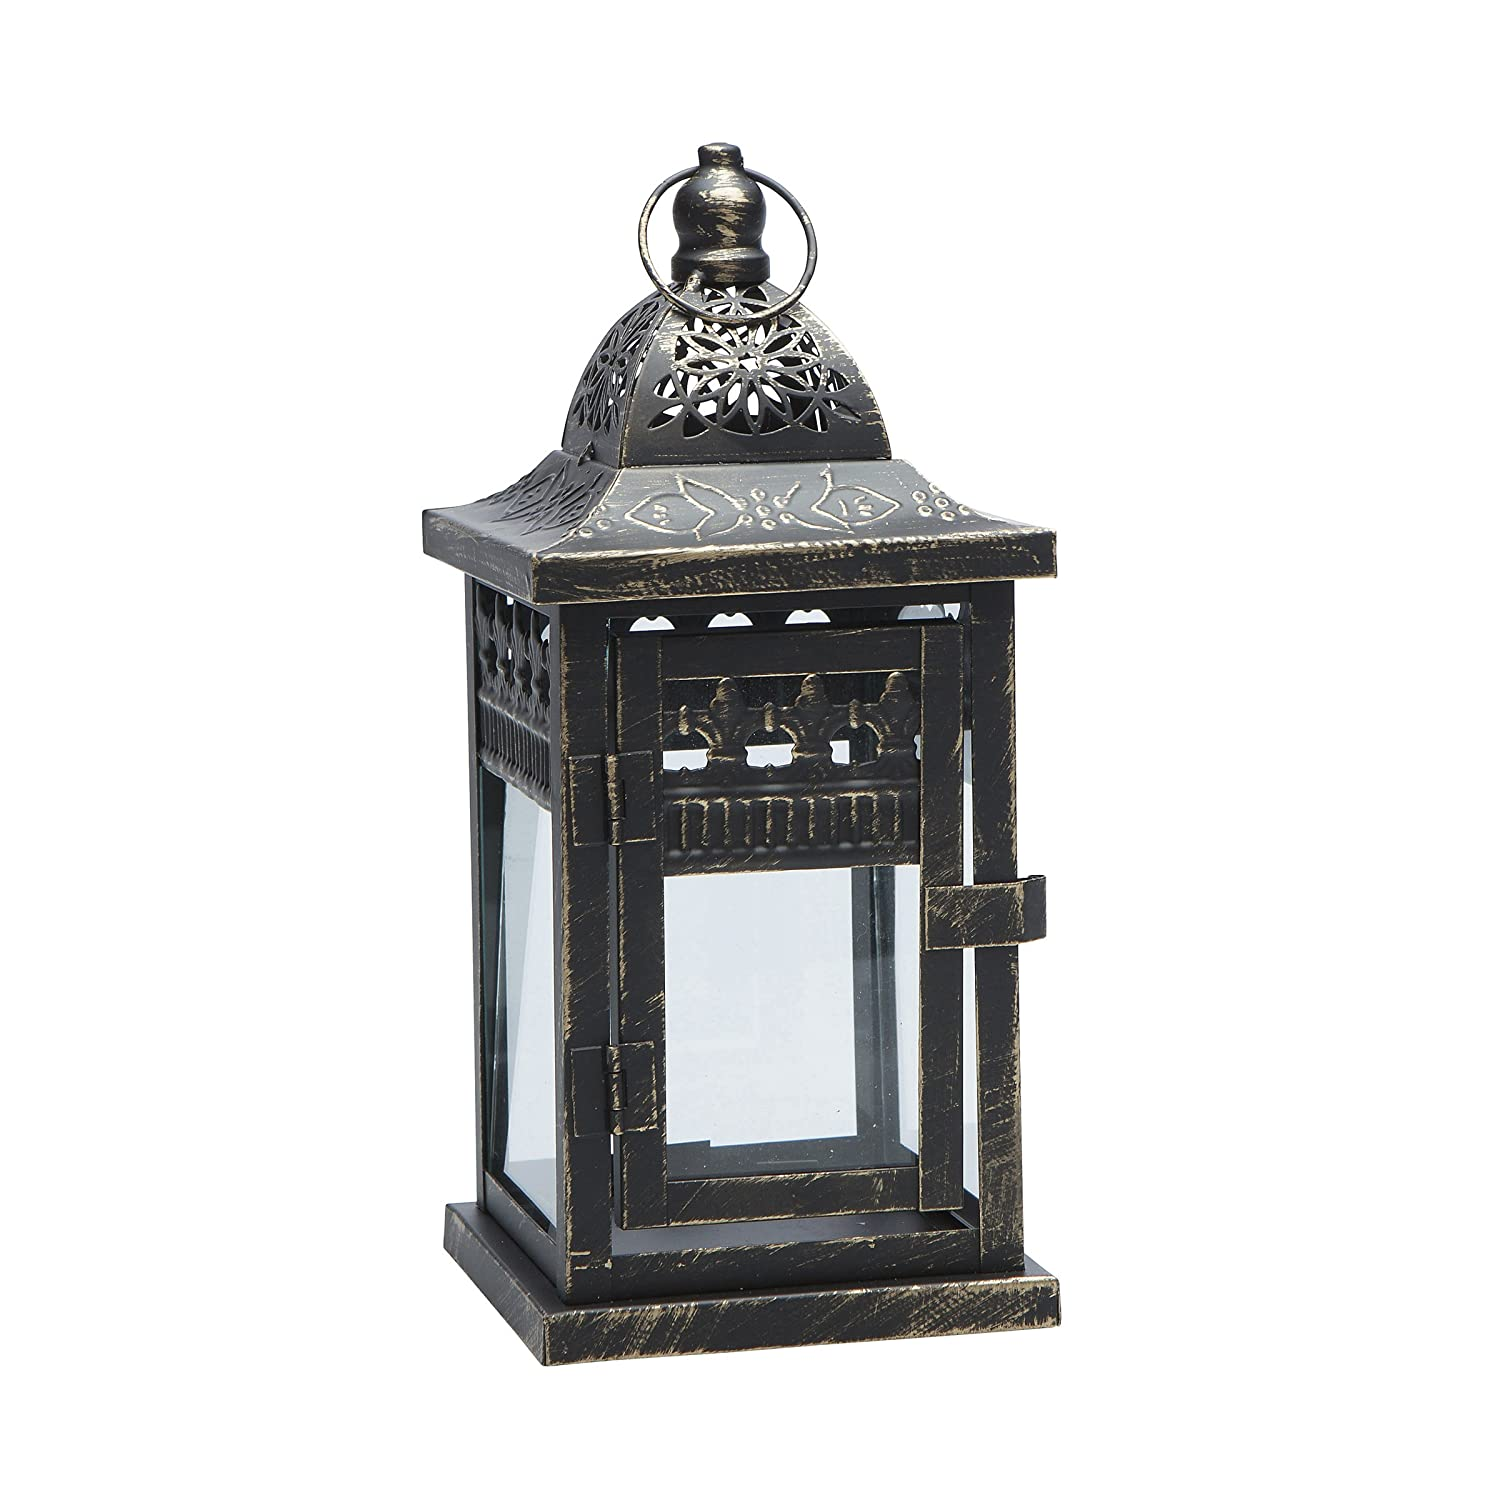 Darice Black Metal Lantern with Distressed Gold Accents, Black/Gold 30012678